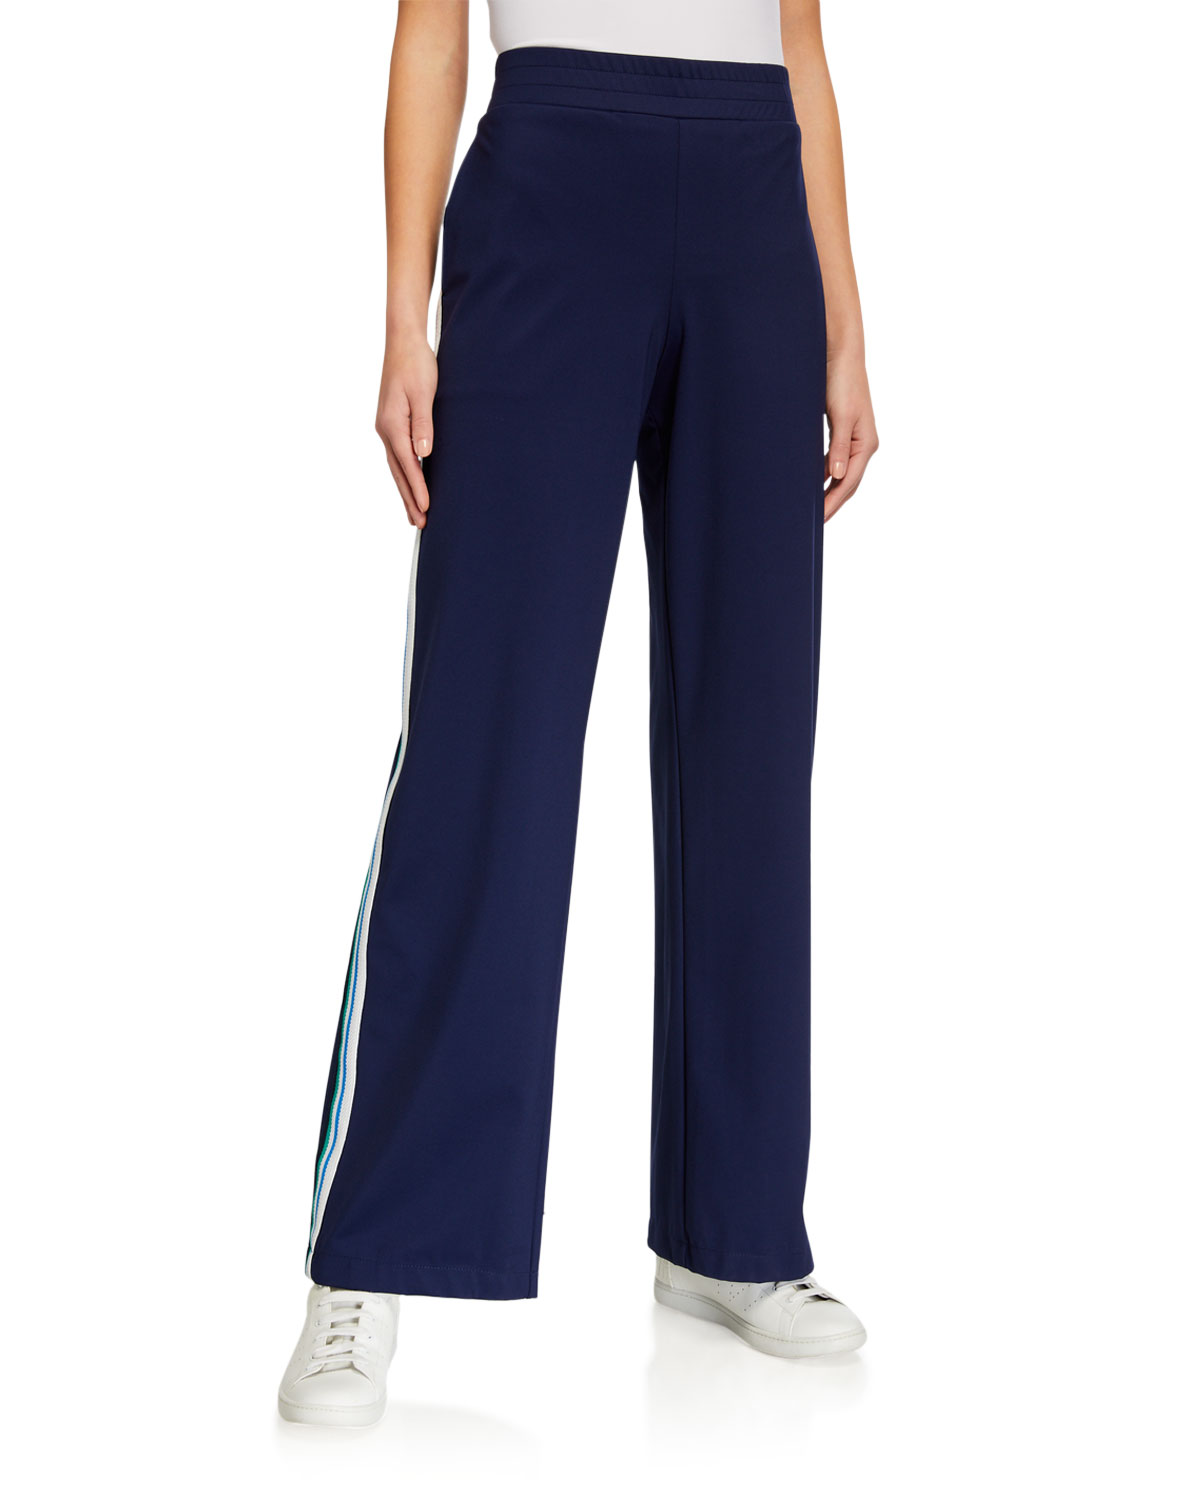 Anatomie Elsie Flare-Cut Side Stripe Easy Pants